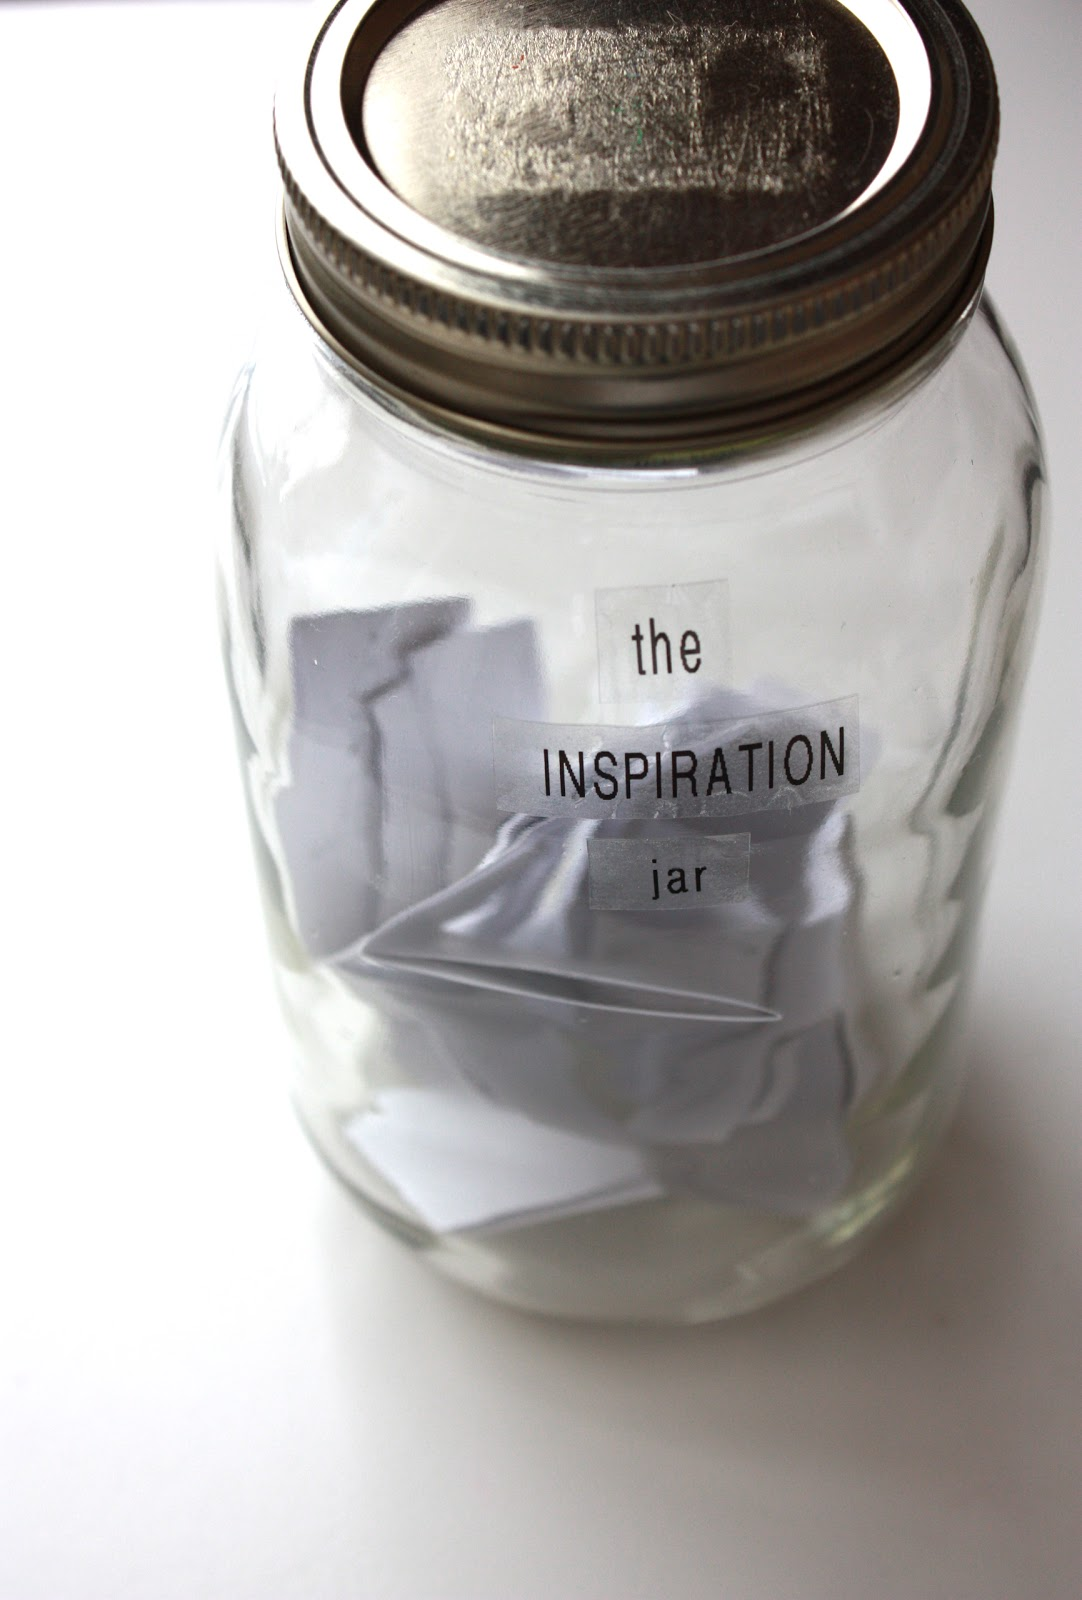 Capture Inspiration Jar. Single Quotes Coding. Sassy Quotes In Spanish. Christian Quotes Unbelief. Famous Quotes About Reading. Hurt Quotes Free Download. Depression Quotes Garden. Heartbreak Ridge Quotes Ak47. Feeling Hurt Rejected Quotes